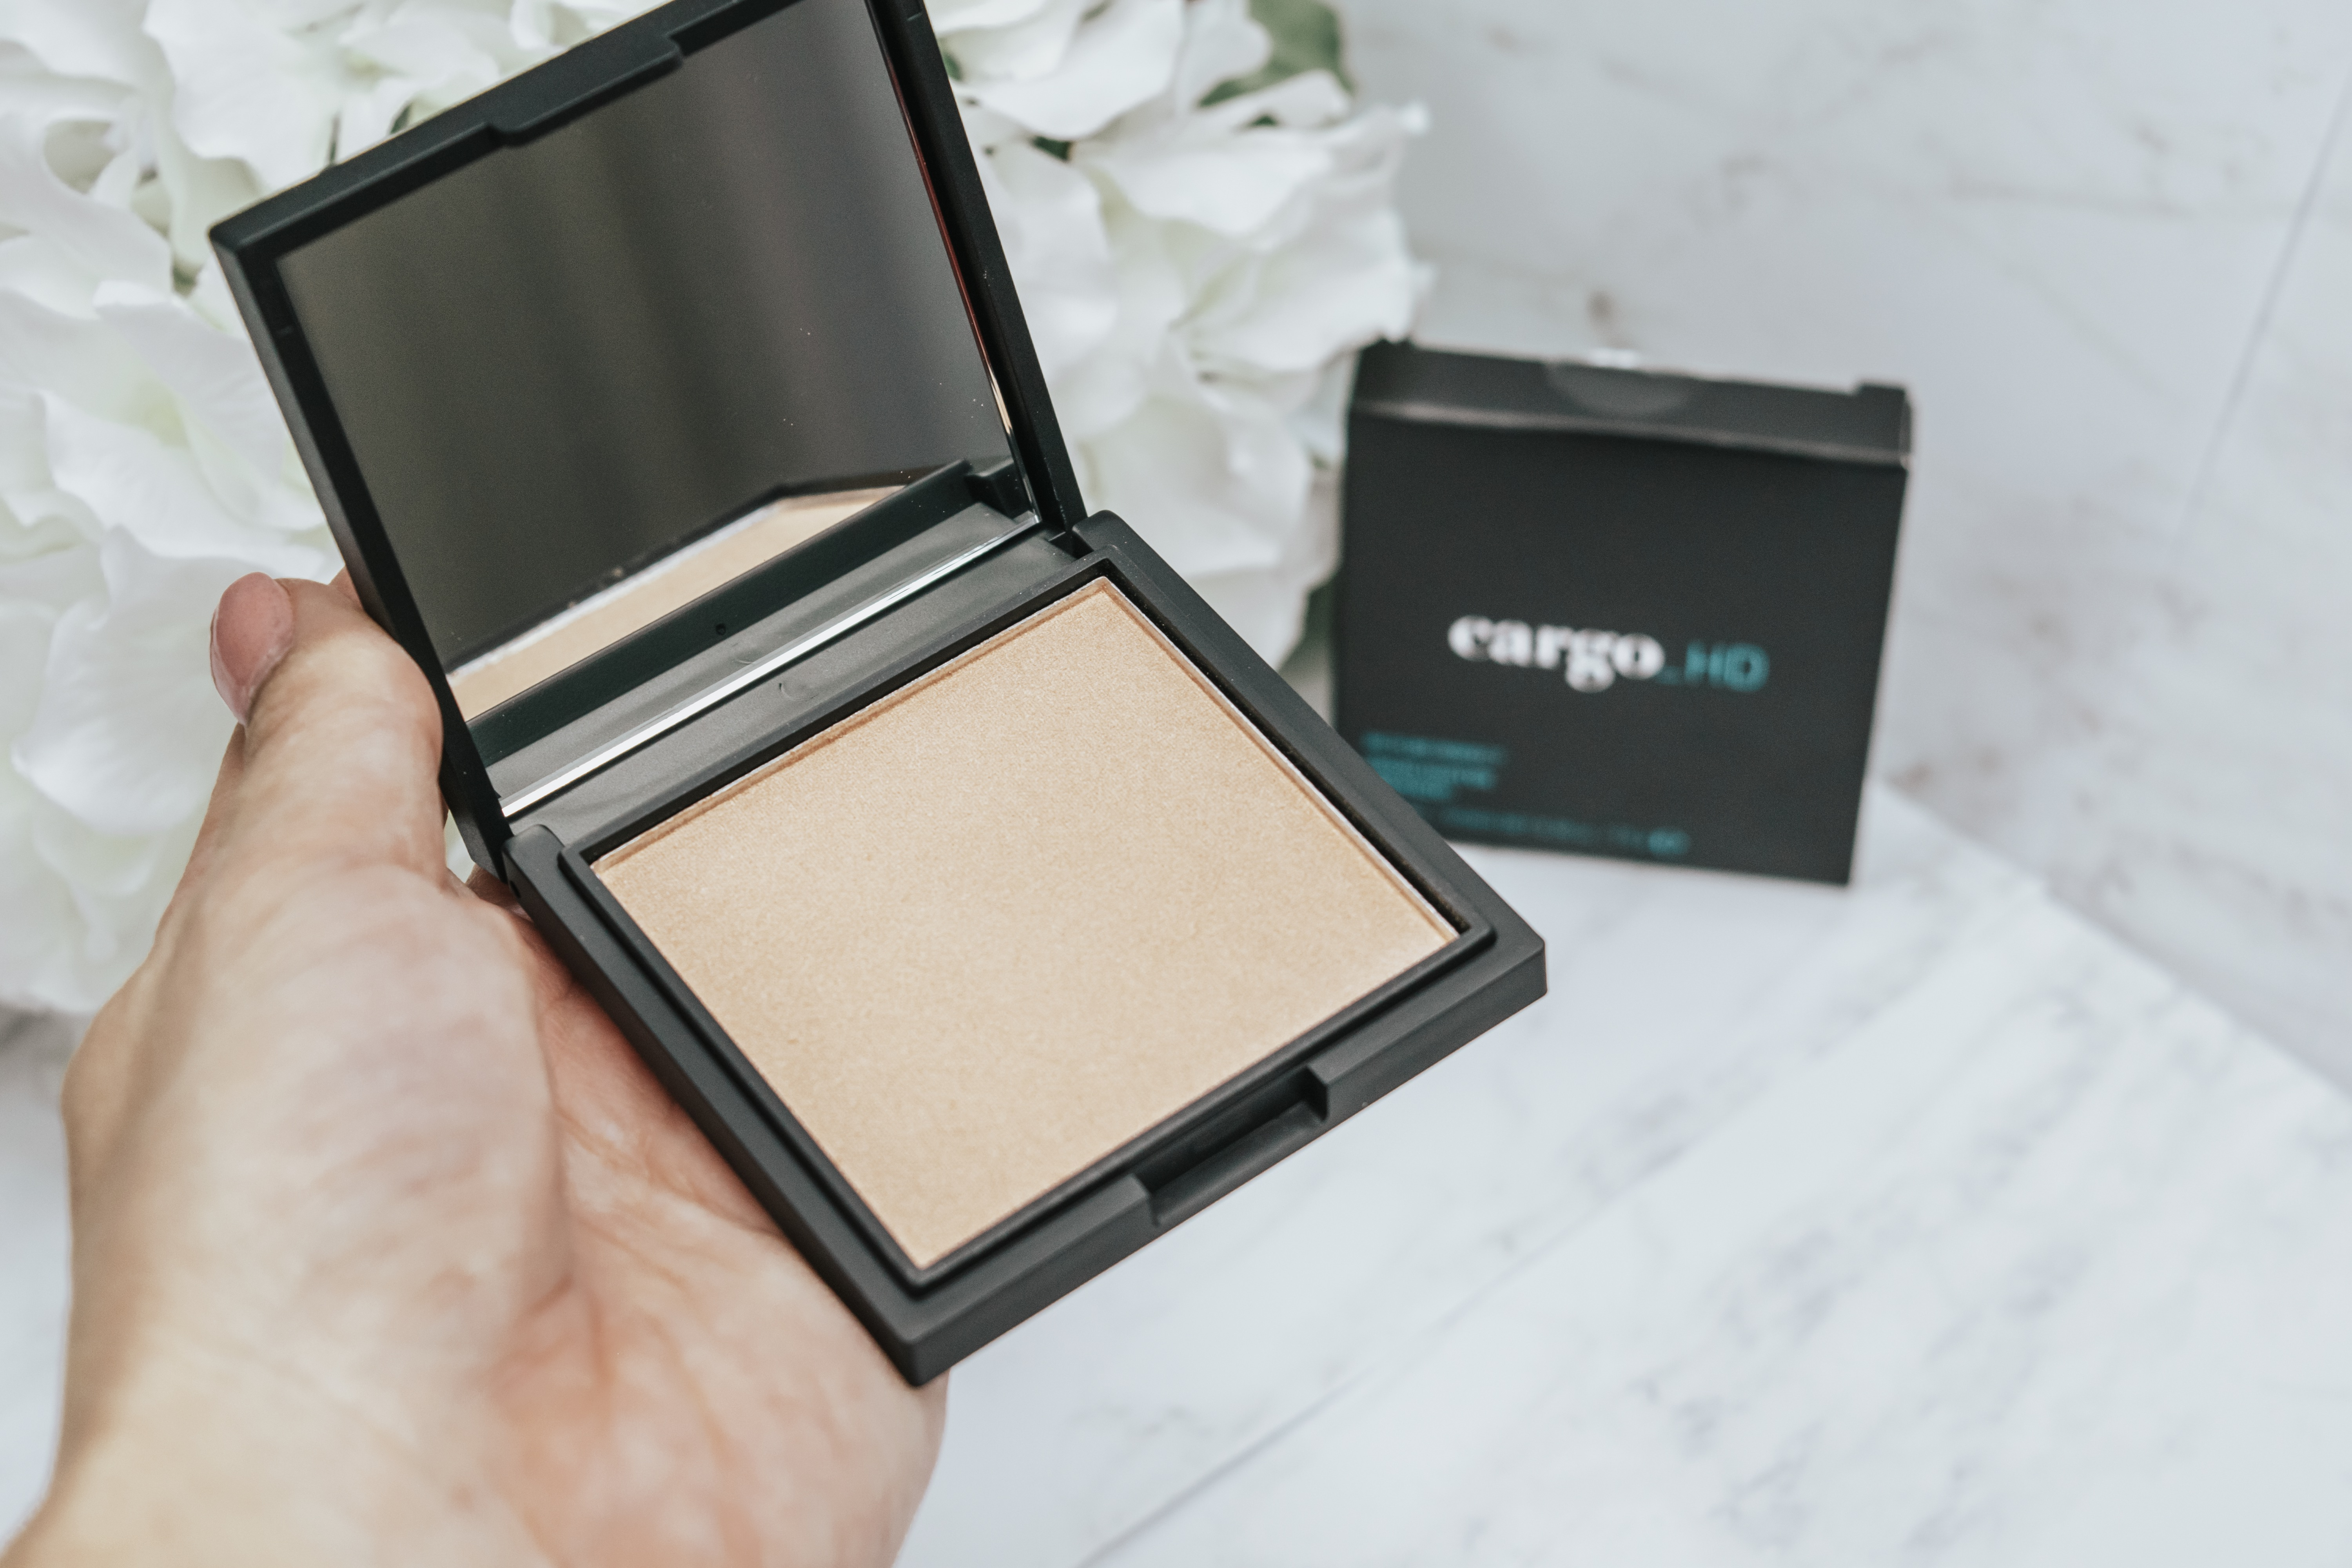 Cargo_HD Picture Perfect Bronzing Powder